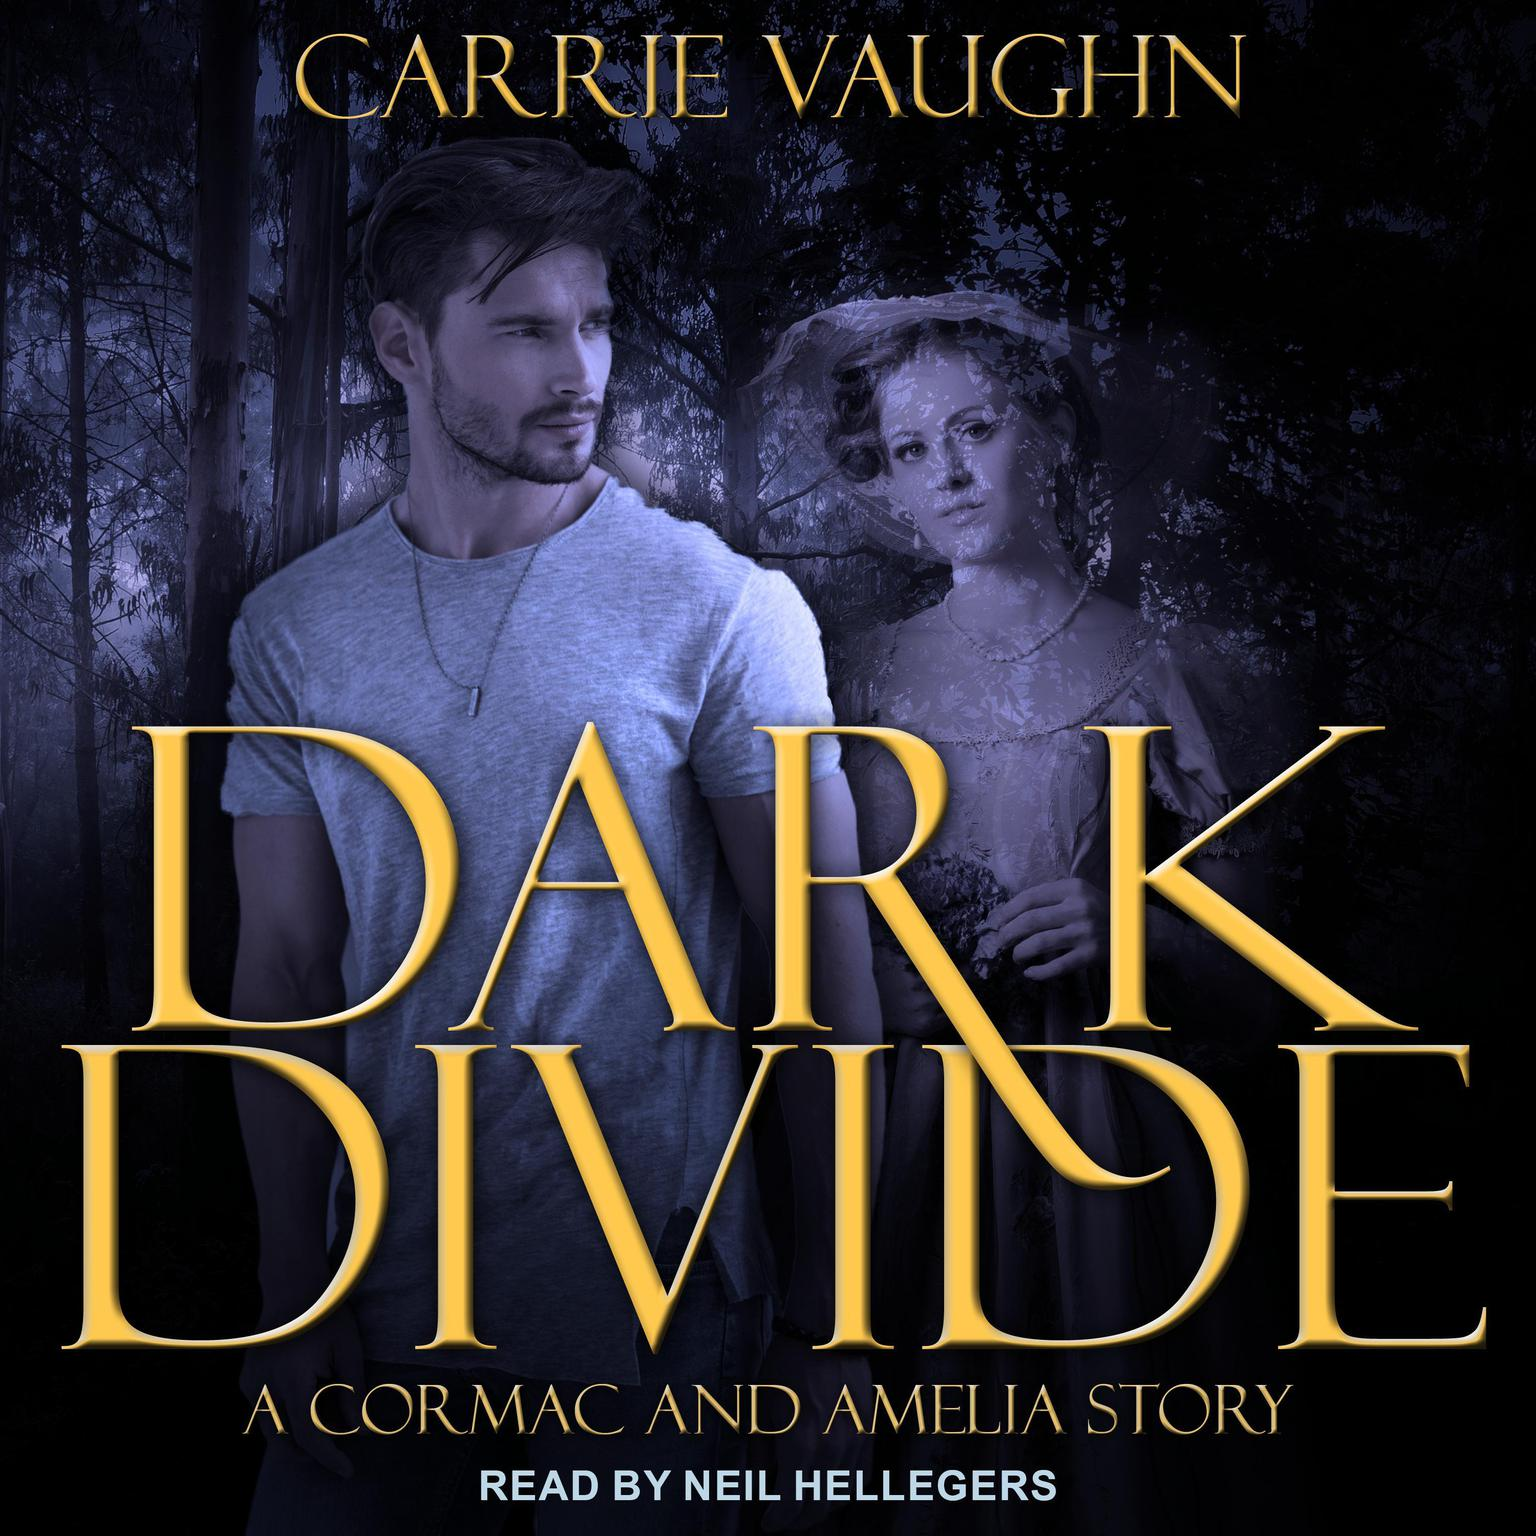 Printable Dark Divide & Badlands Witch: A Cormac and Amelia Story Audiobook Cover Art